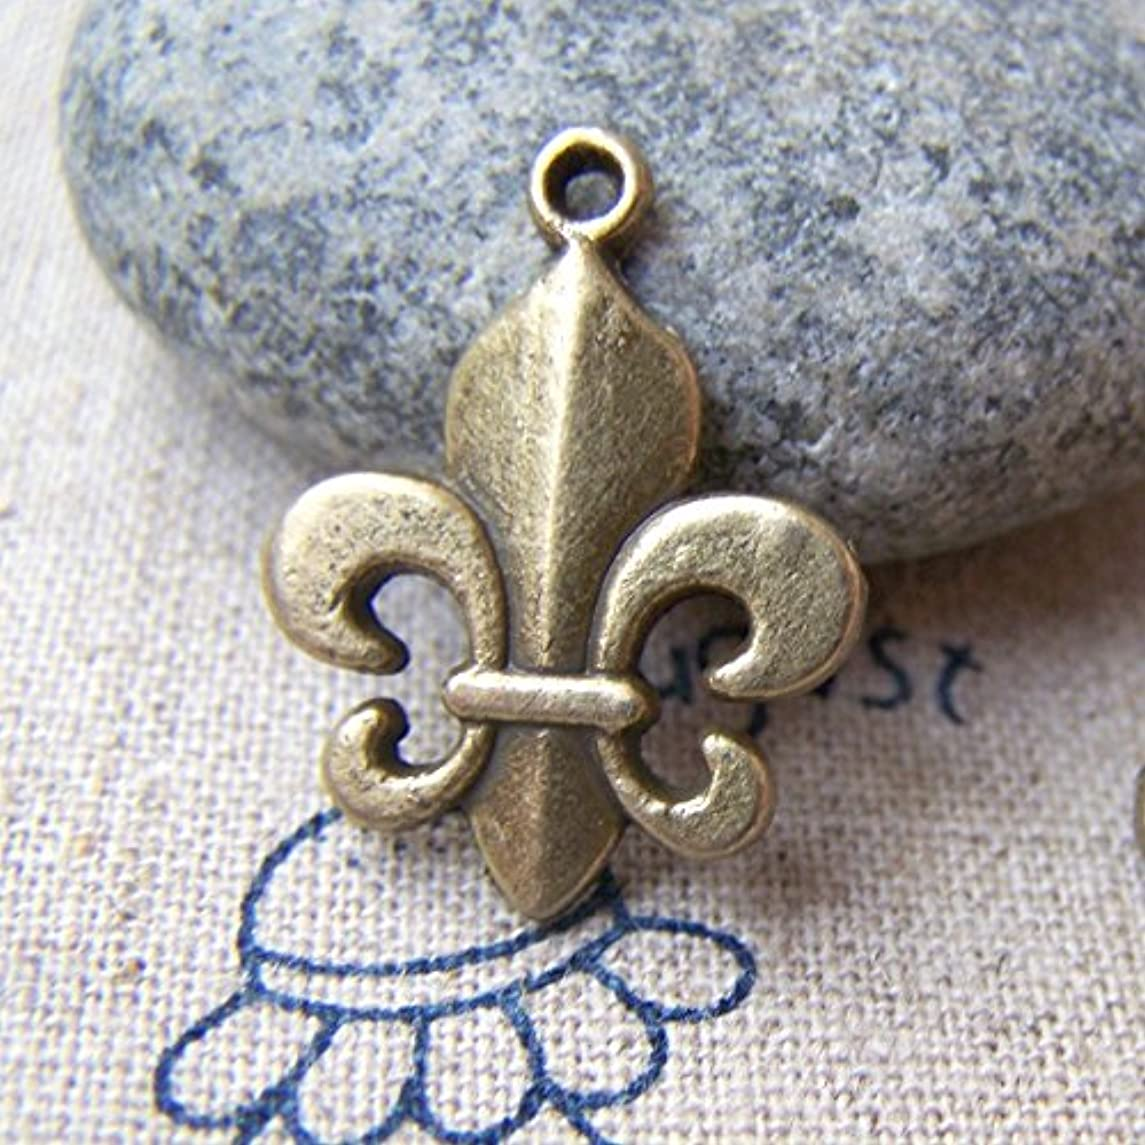 12 pcs of Antique Bronze Lovely Fleur de Lis Flower of Lily Charms 17x18mm (CB168)